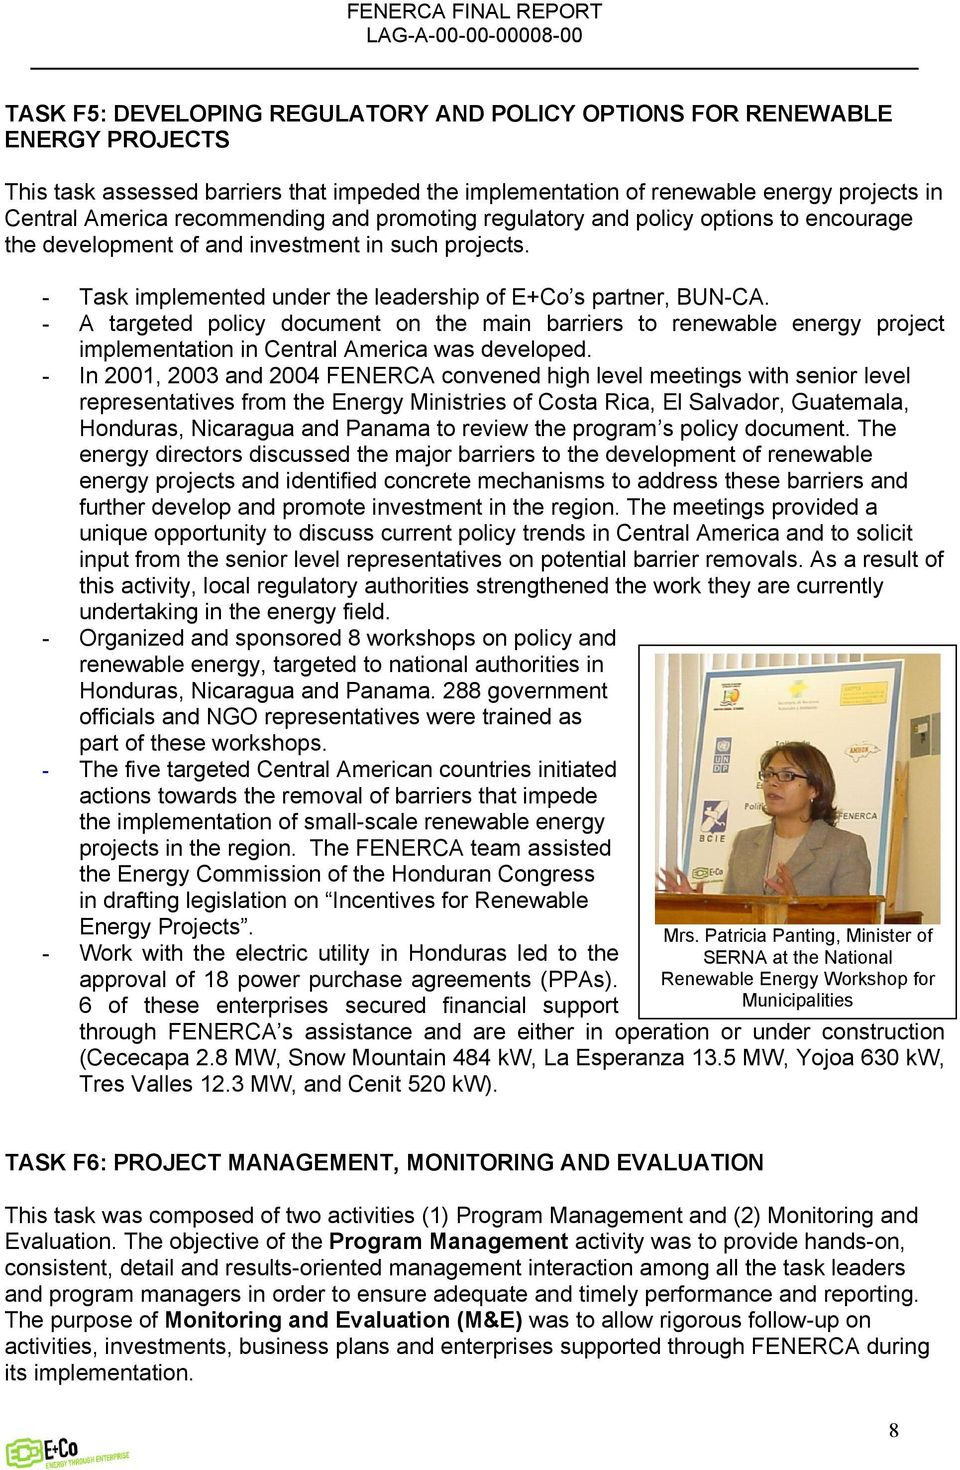 - A targeted policy document on the main barriers to renewable energy project implementation in Central America was developed.